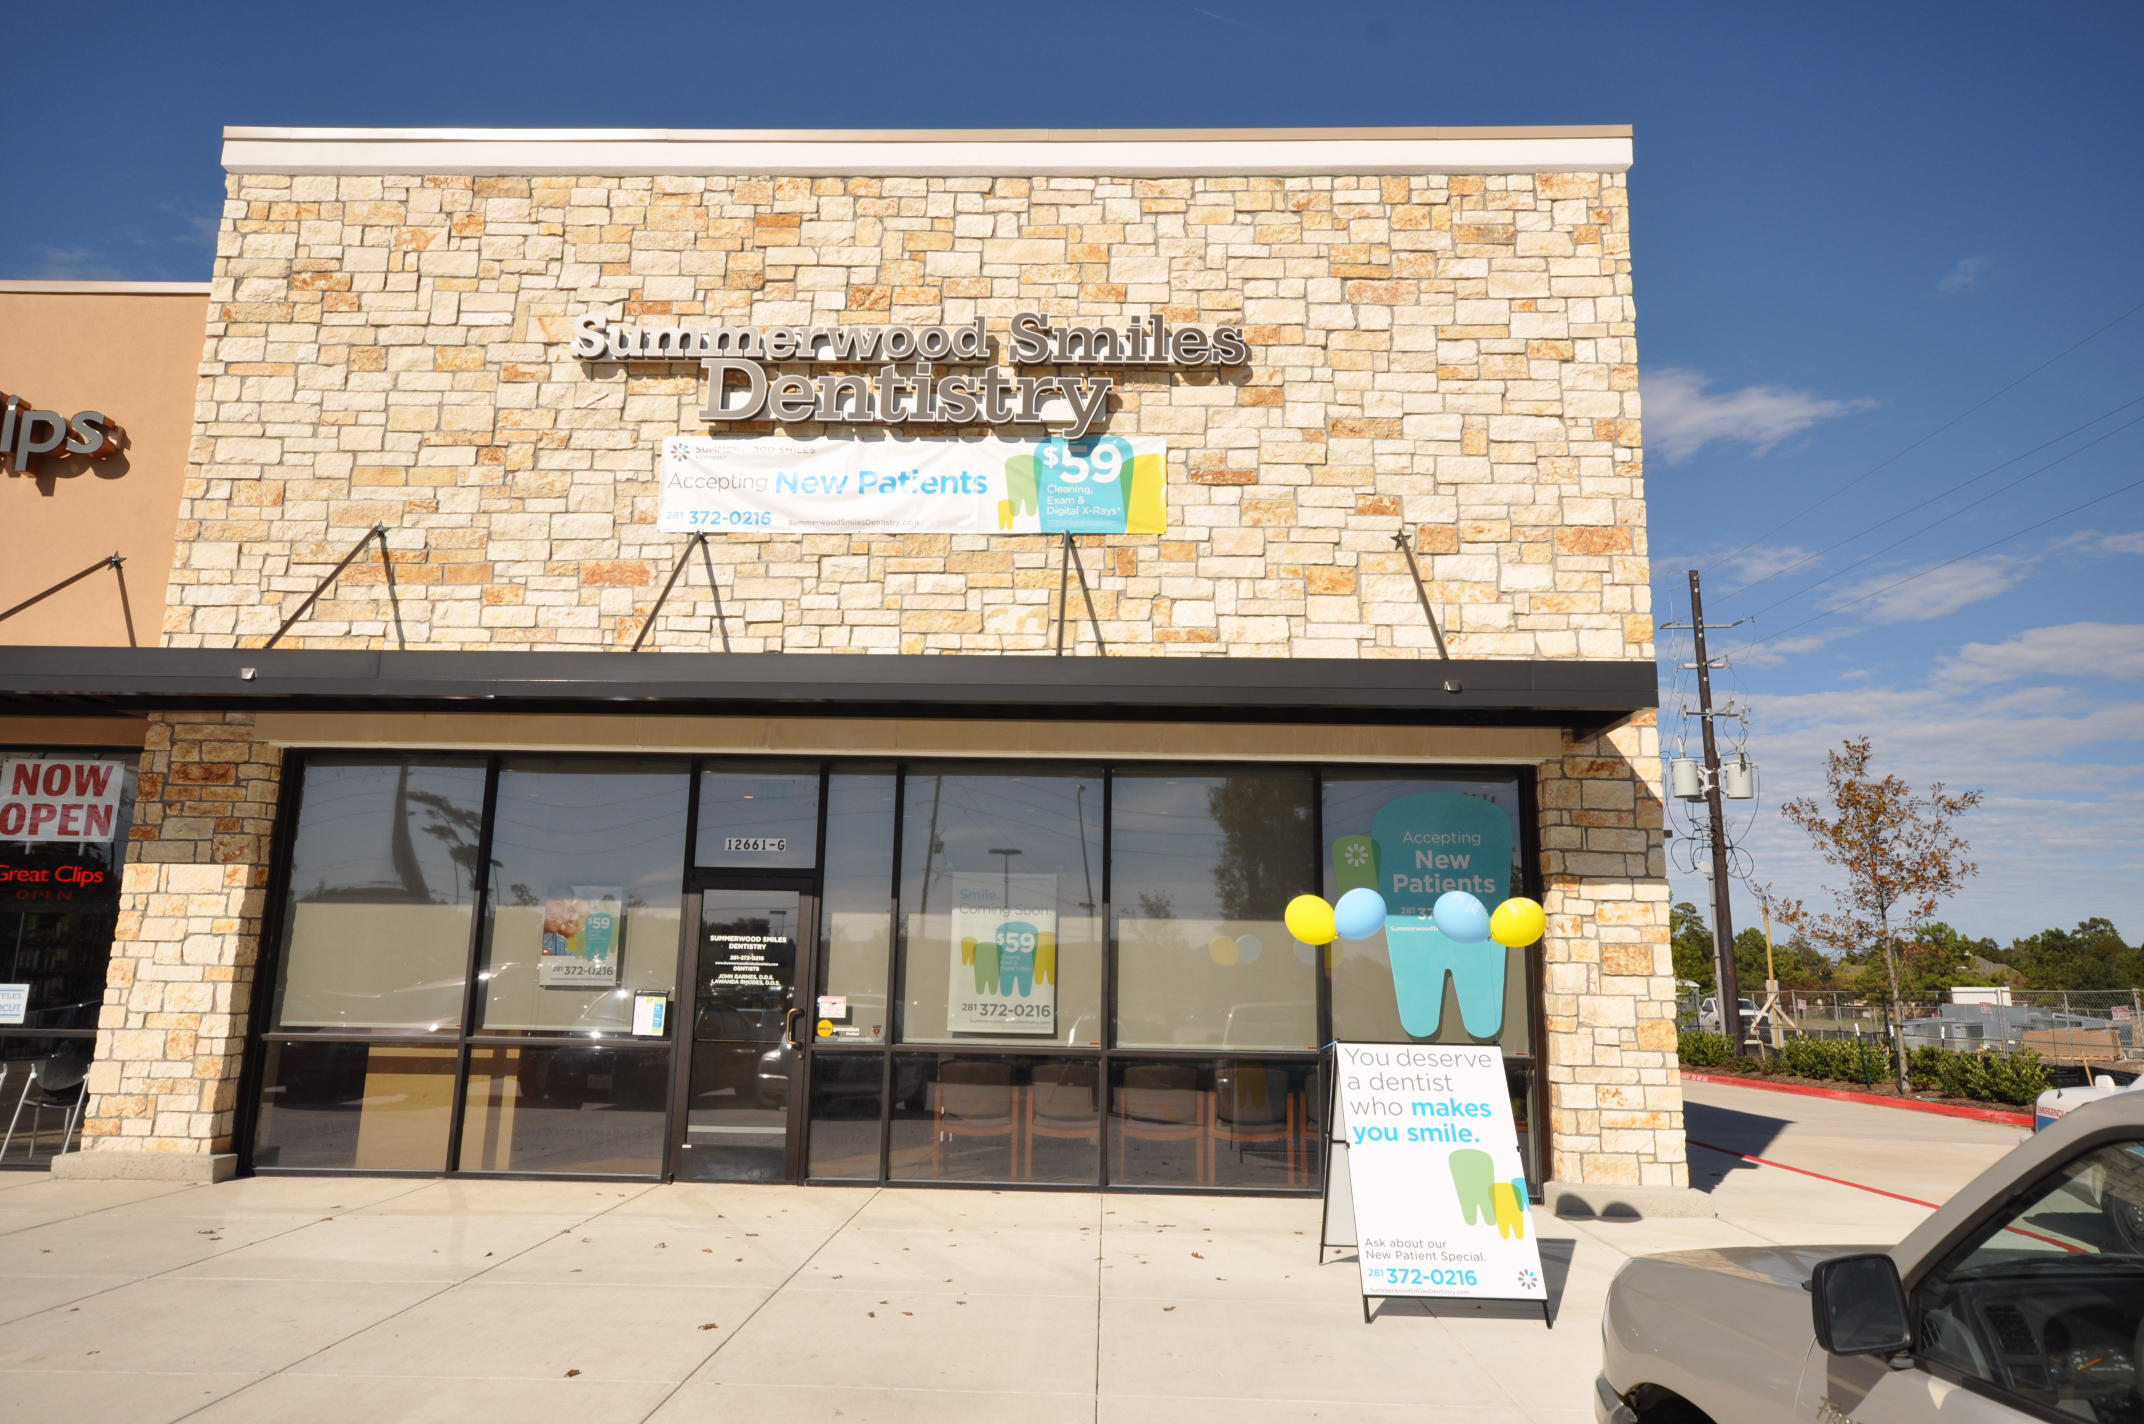 Summerwood Smiles Dentistry And Orthodontics Coupons Near